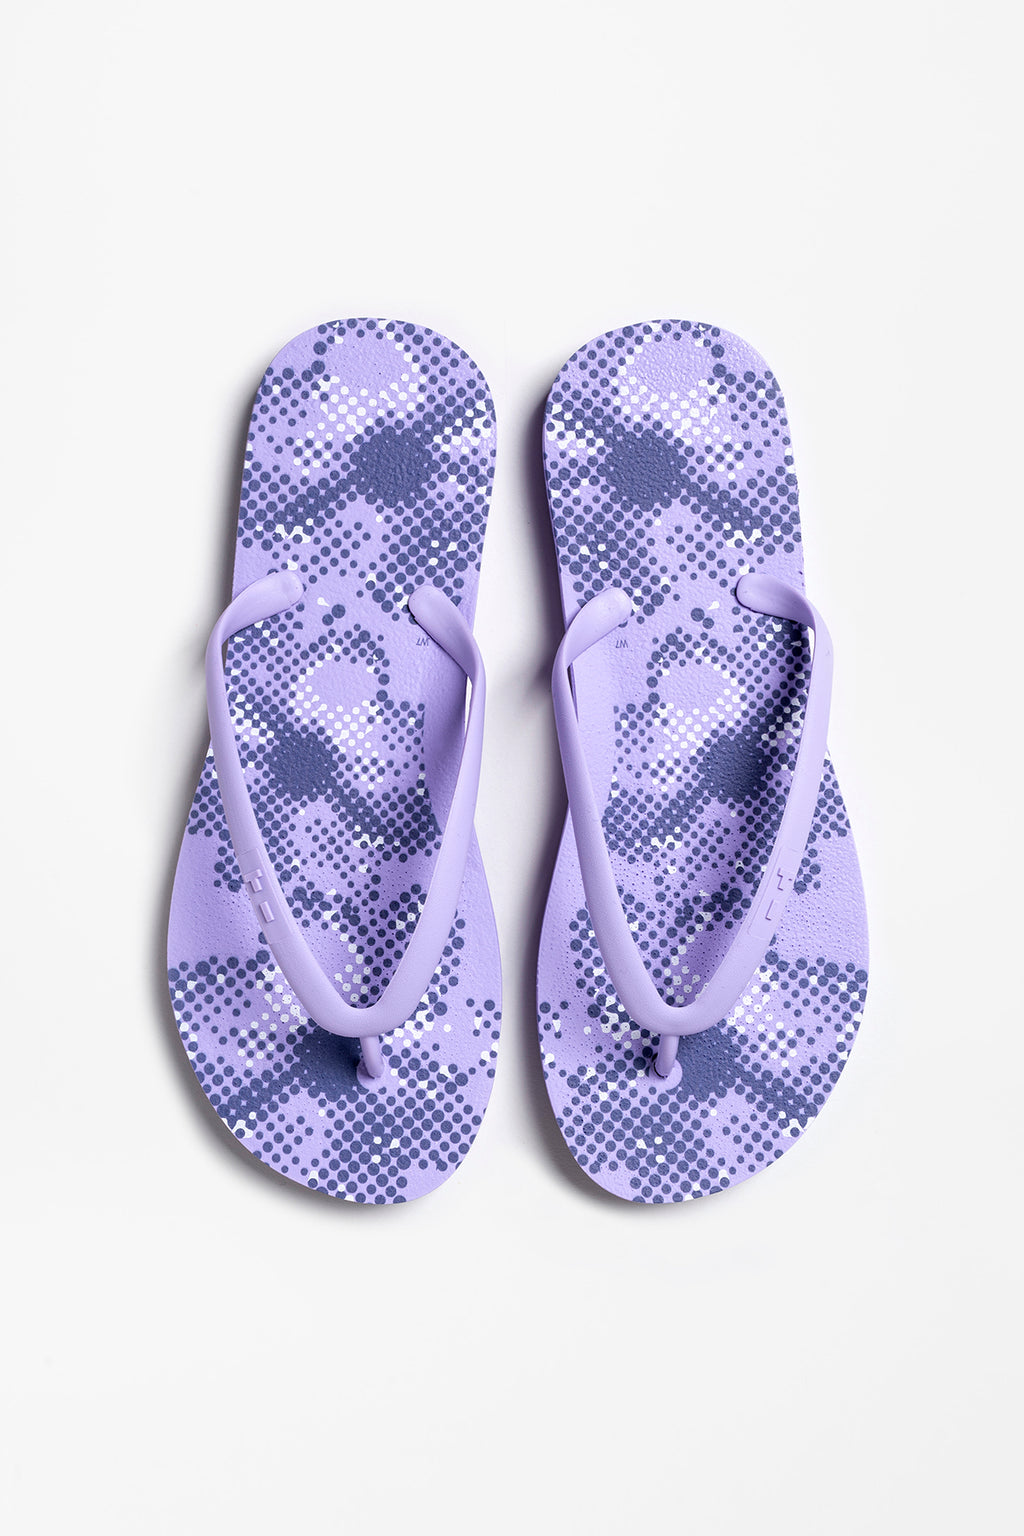 IN BLOOM Flip Flops